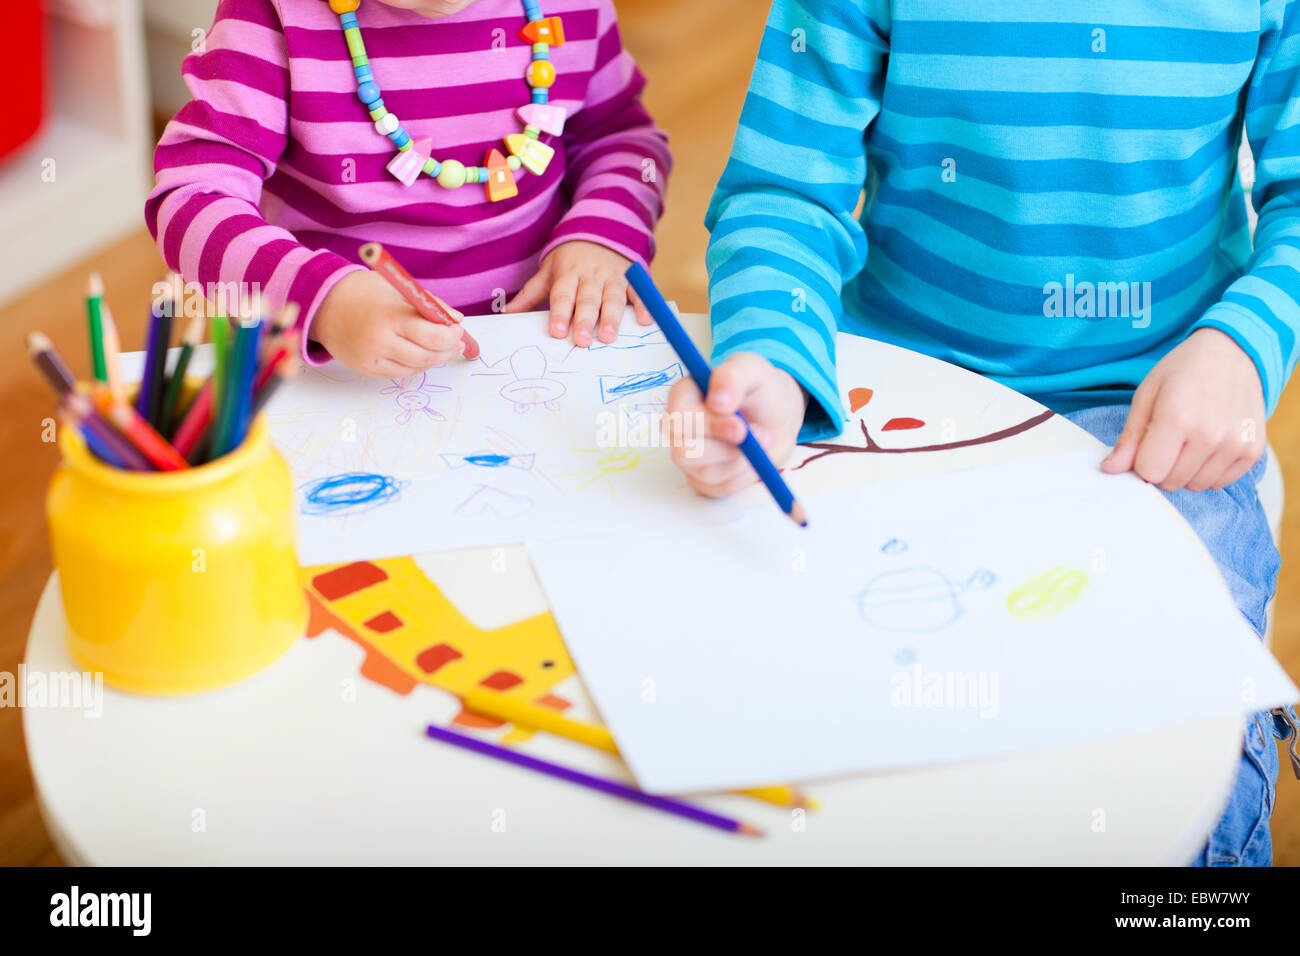 two little children drawing with crayons - Stock Image